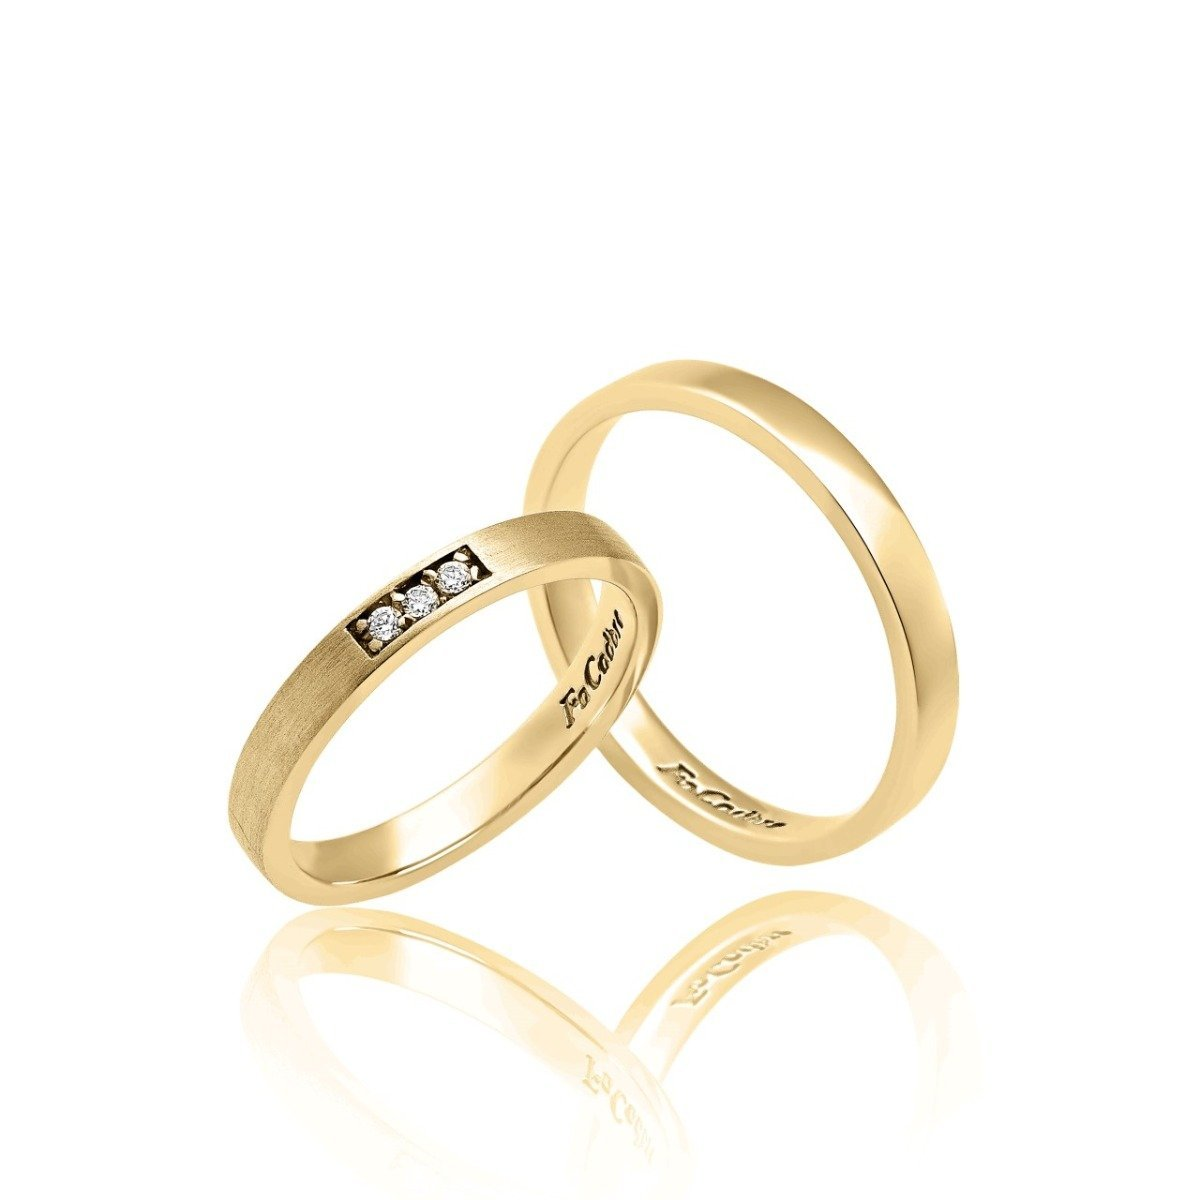 FaCad'oro WR-39 14ct Gold Wedding Rings - Goldy Jewelry Store